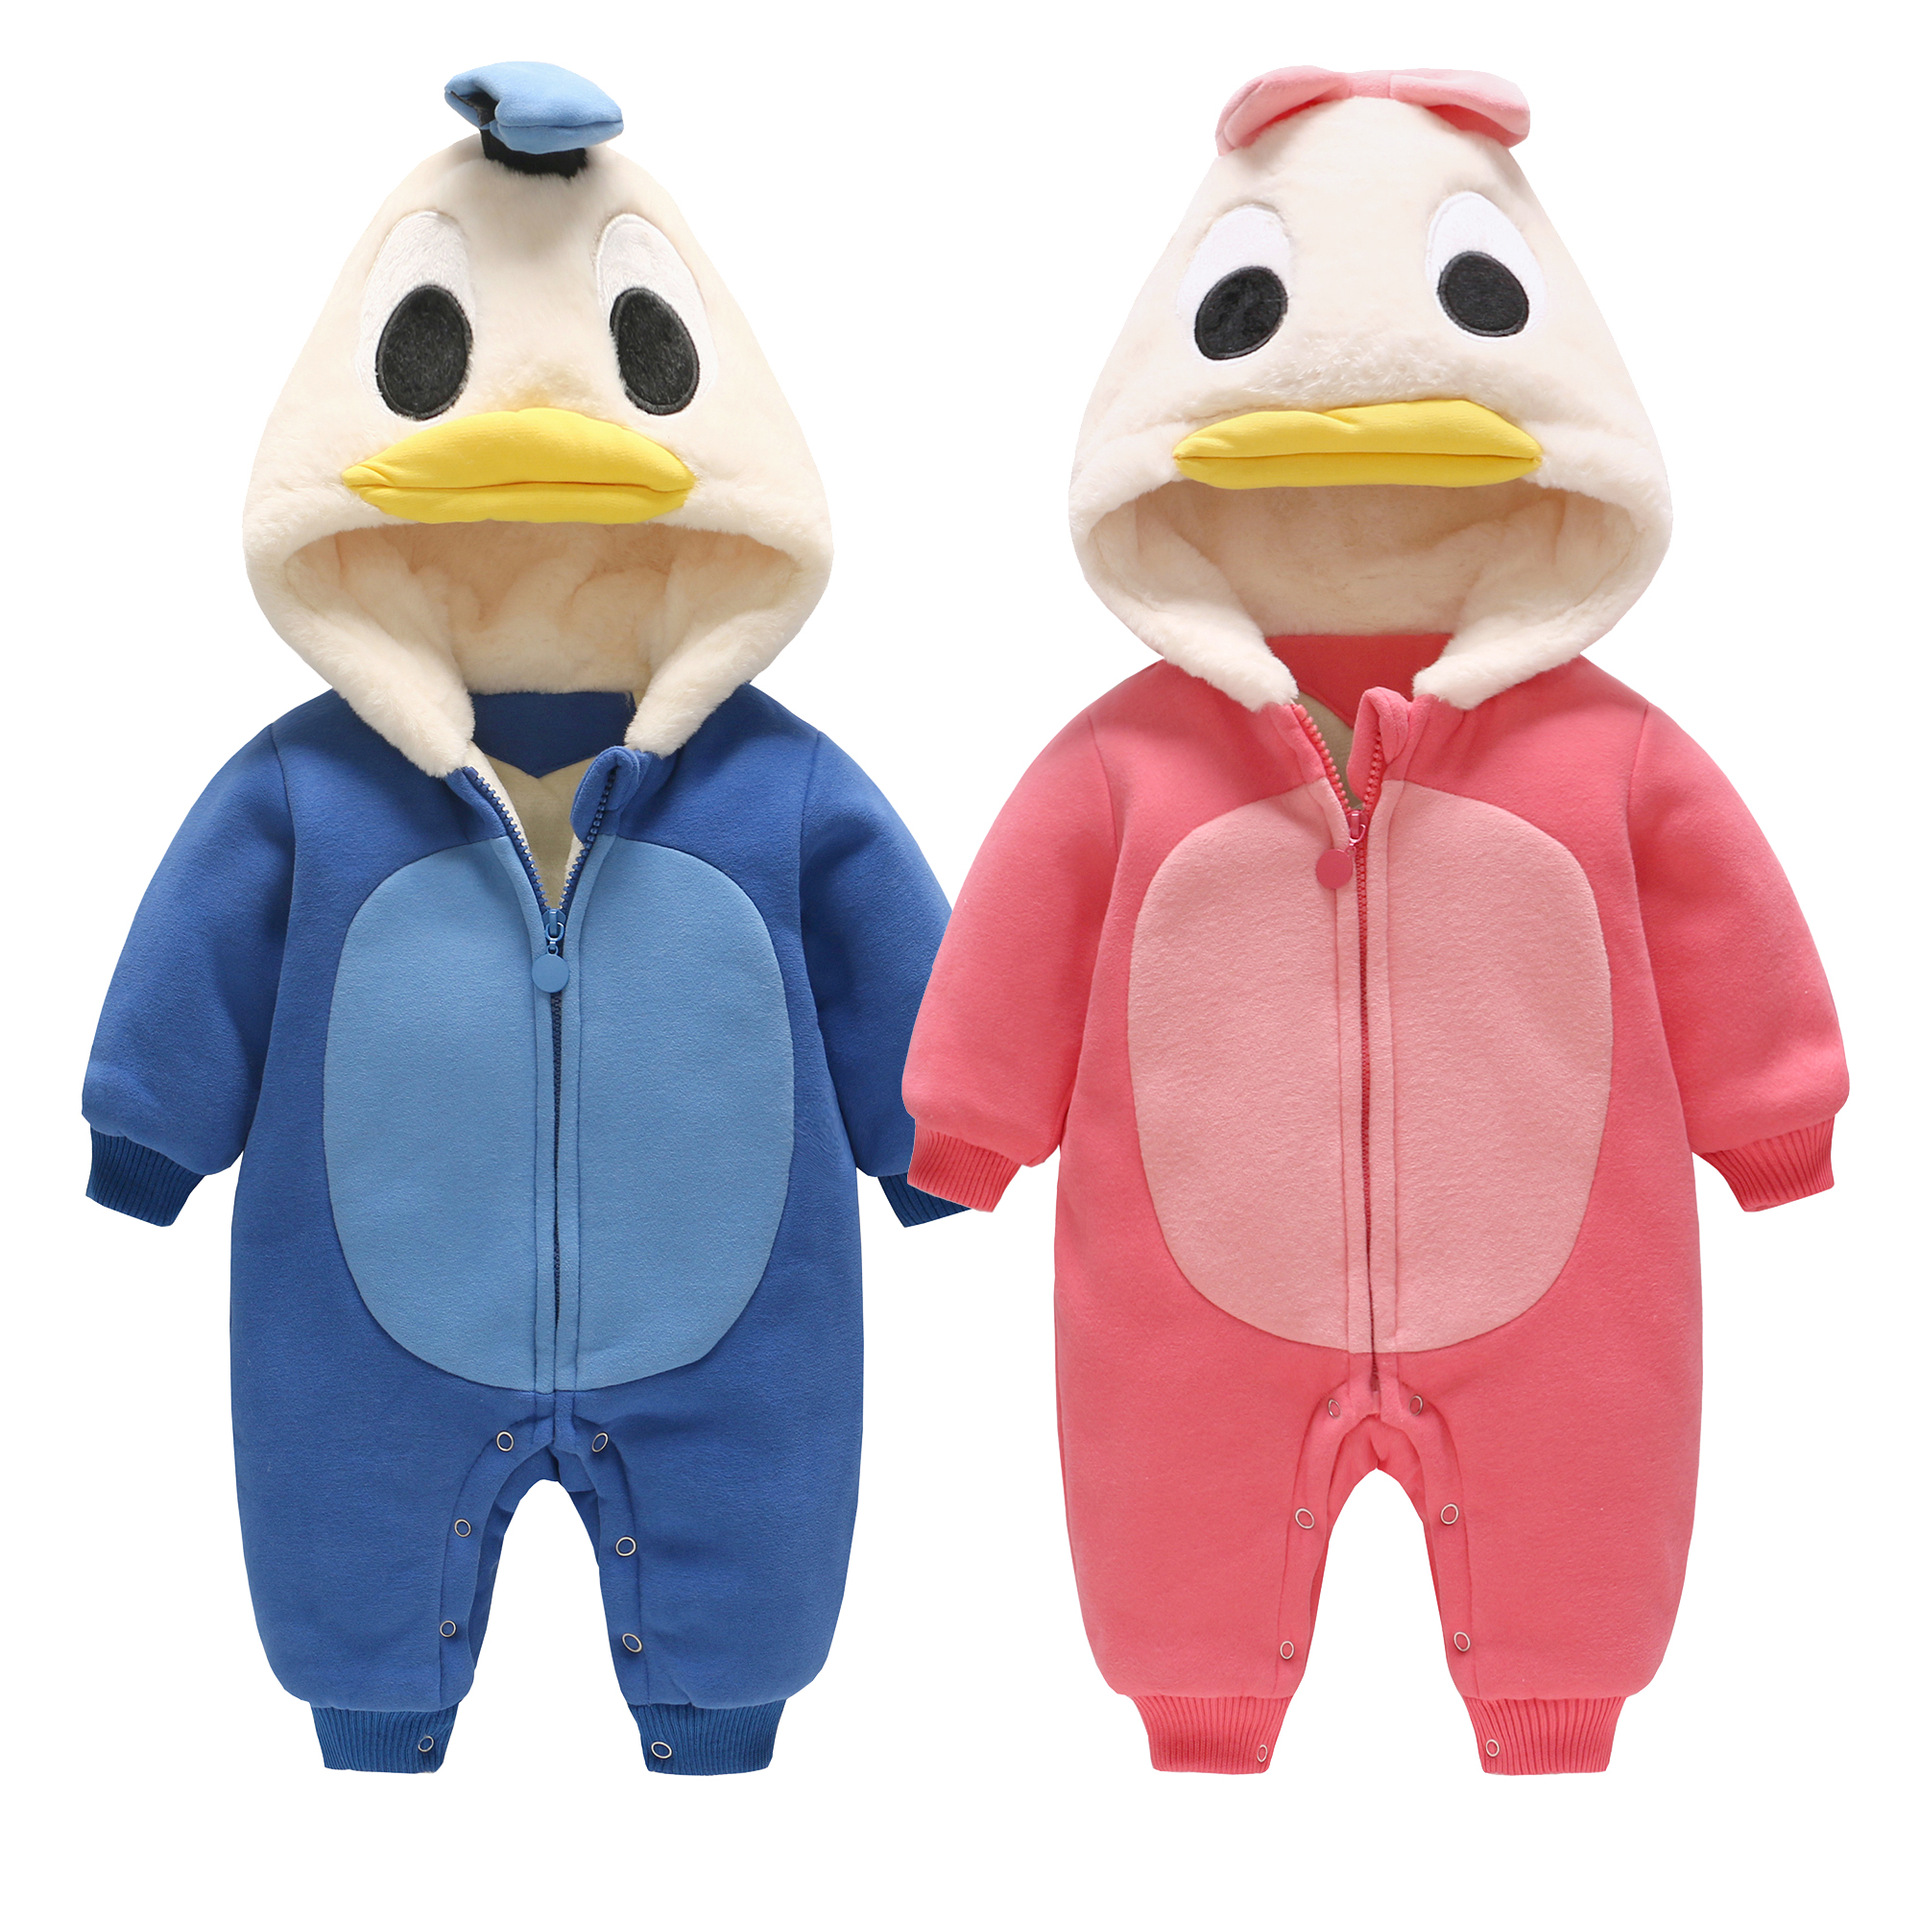 New Born Baby rompers 2019 Winter Warm Clothing 3 9 6 12 Month Baby Kids Boys Girls Cotton Newborn Cute Duck Infant FootiesNew Born Baby rompers 2019 Winter Warm Clothing 3 9 6 12 Month Baby Kids Boys Girls Cotton Newborn Cute Duck Infant Footies